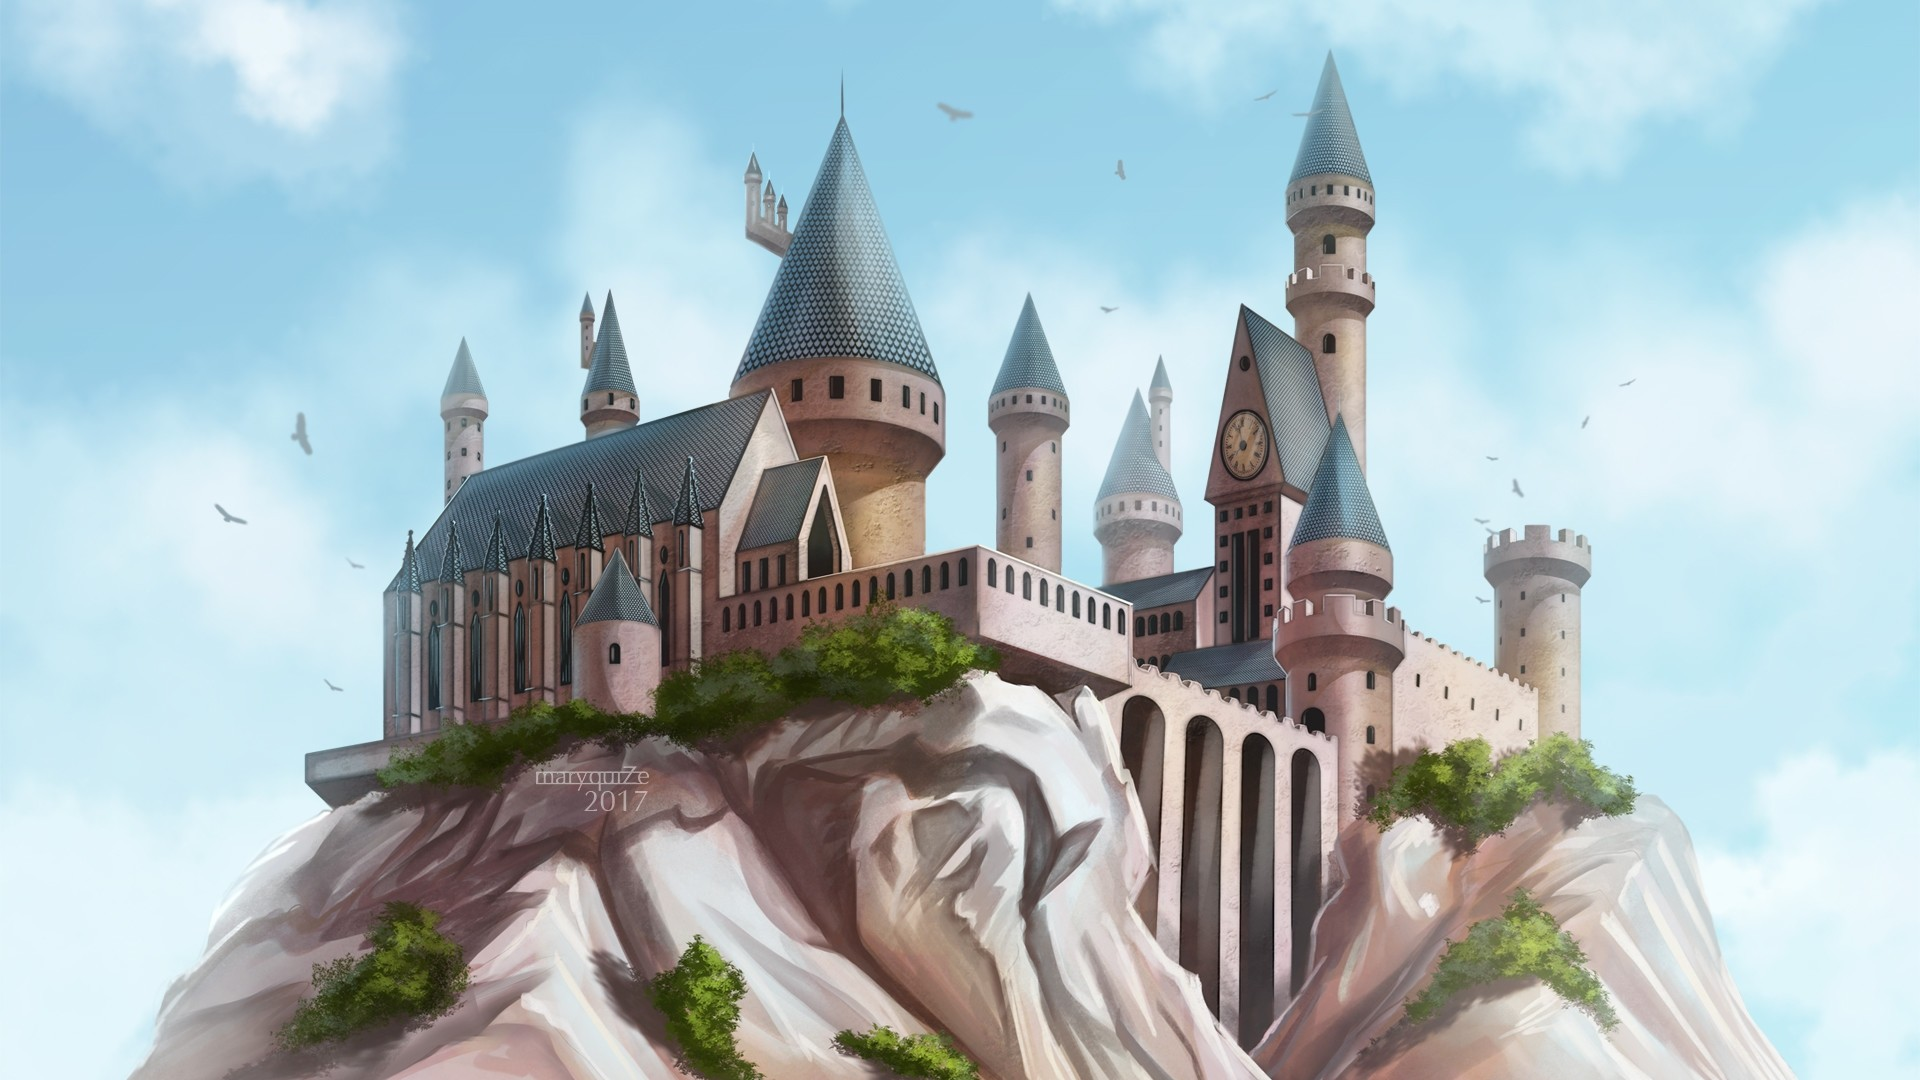 Hogwarts Background